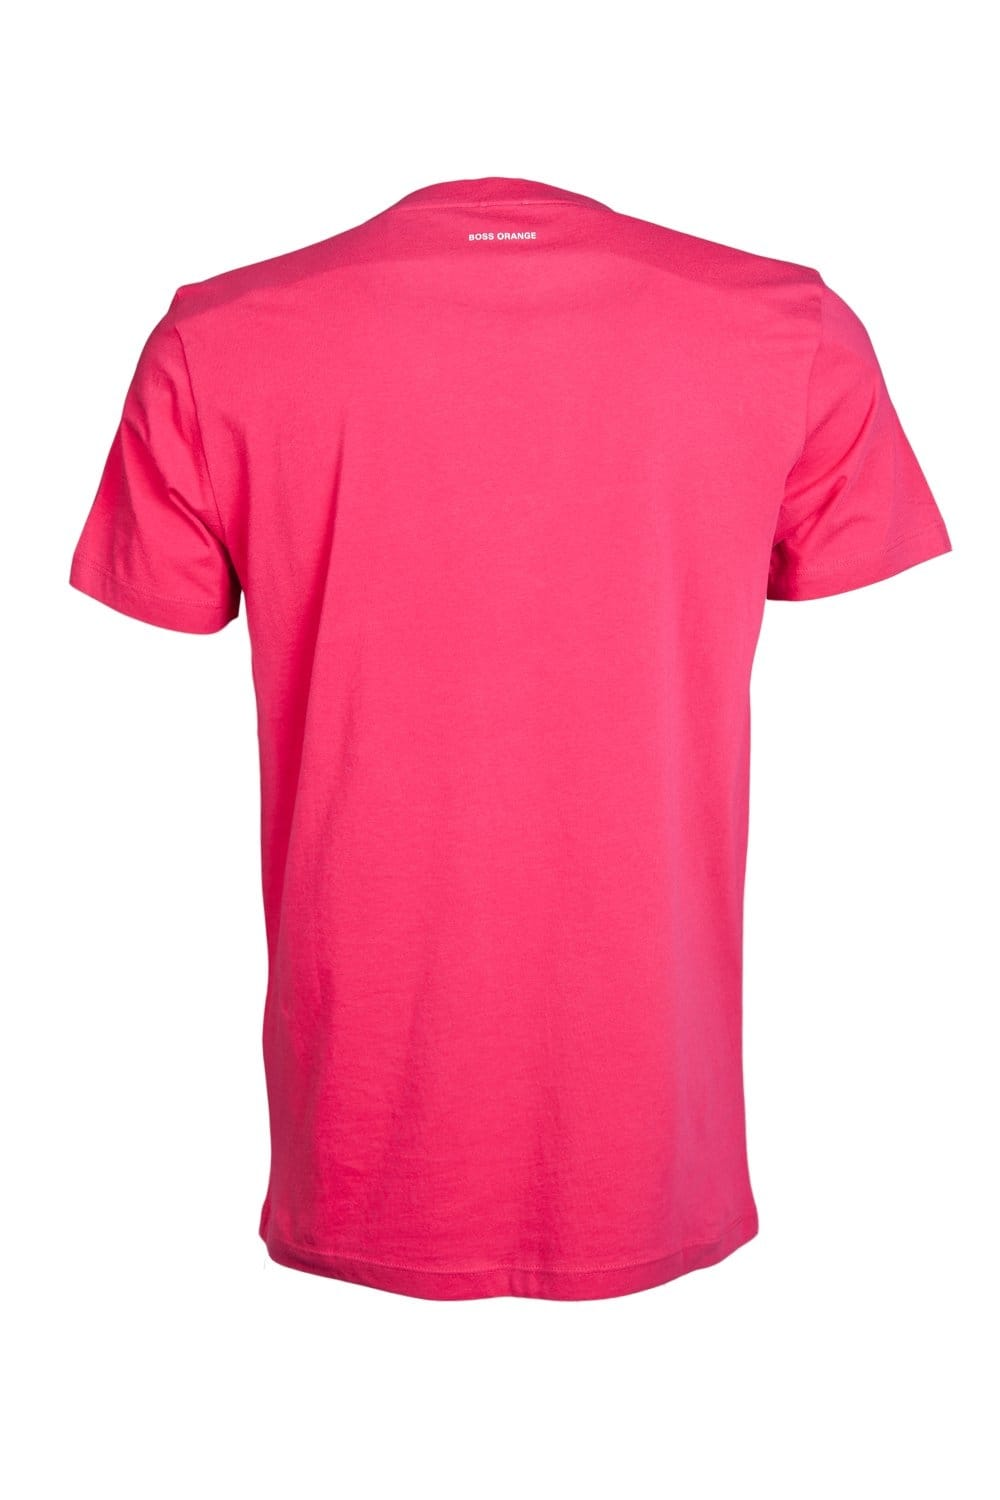 hugo boss orange round neck t shirt in white and pink. Black Bedroom Furniture Sets. Home Design Ideas